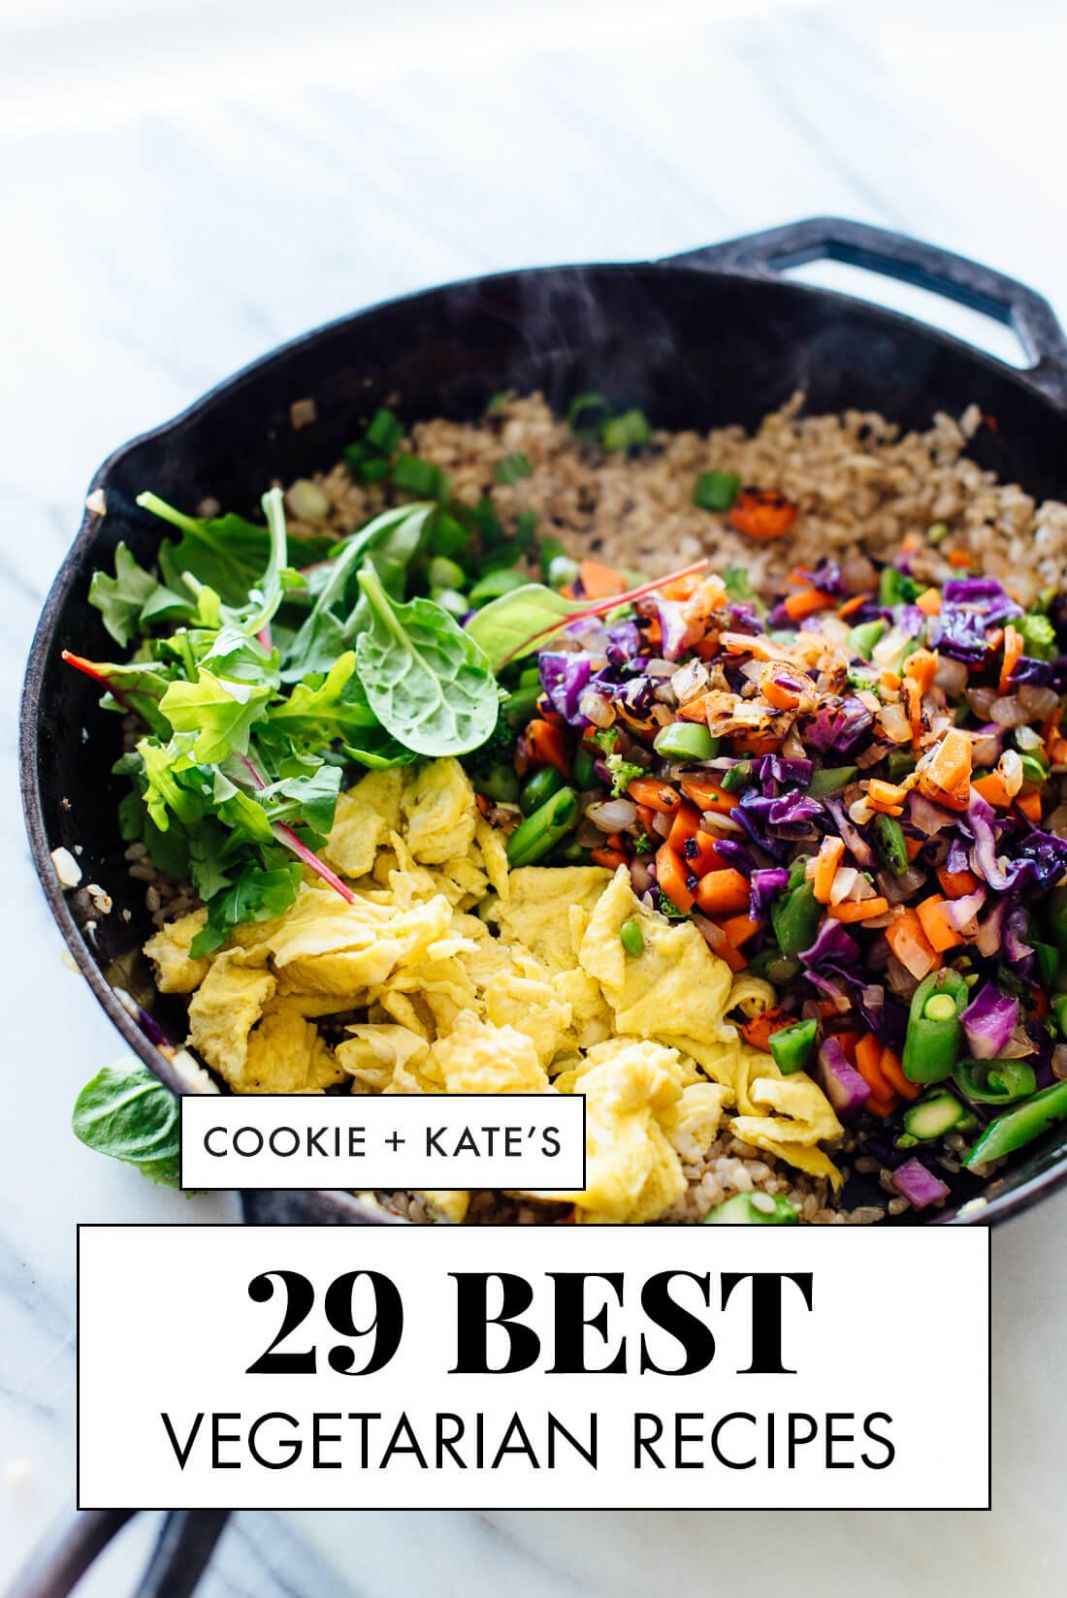 8 Best Vegetarian Recipes - Cookie and Kate - Dinner Recipes Veg